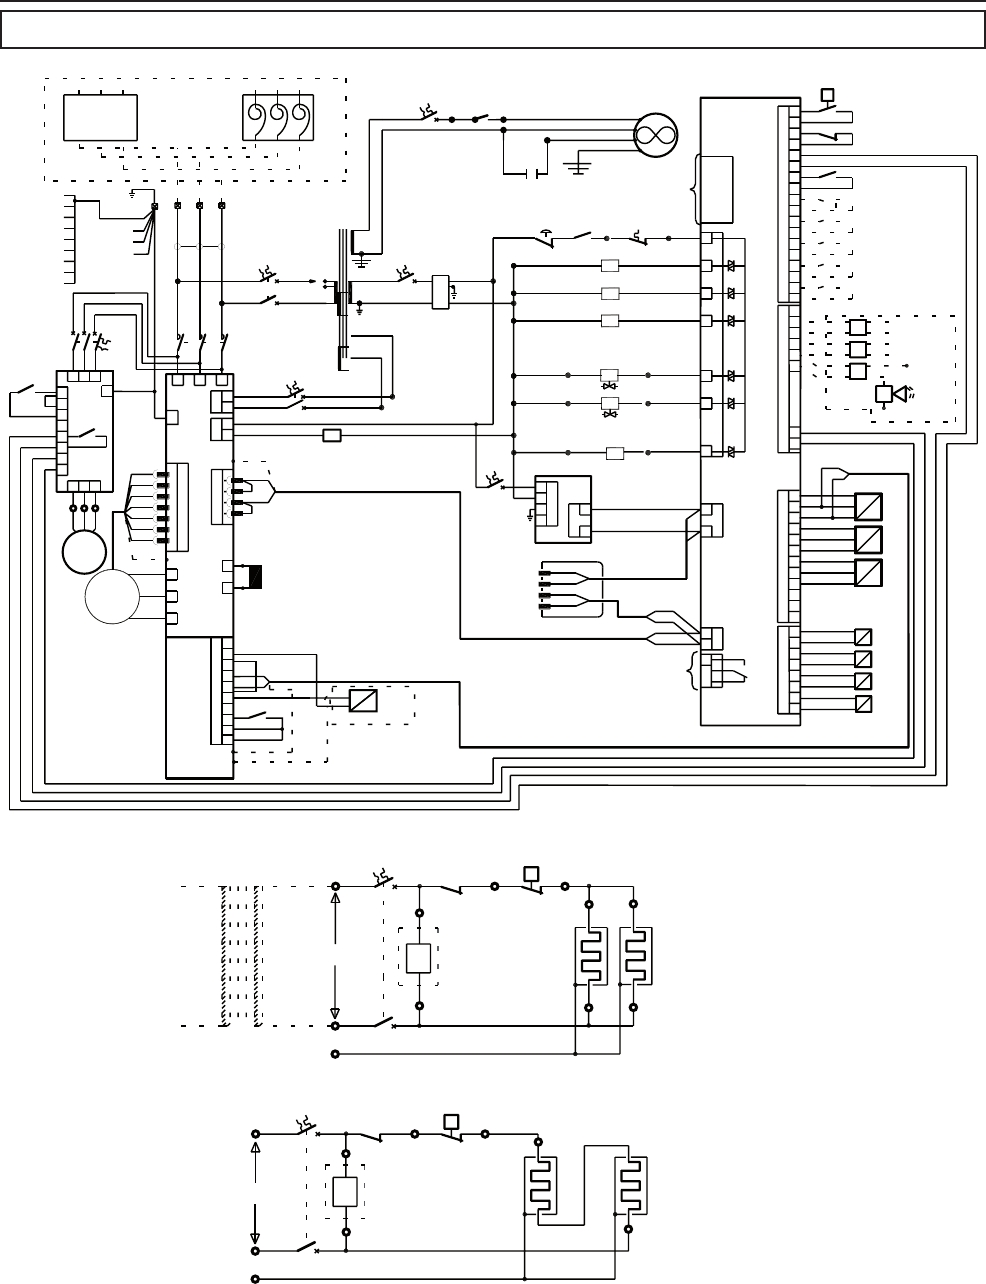 ingersoll rand air compressor wiring diagram free wiring. Black Bedroom Furniture Sets. Home Design Ideas